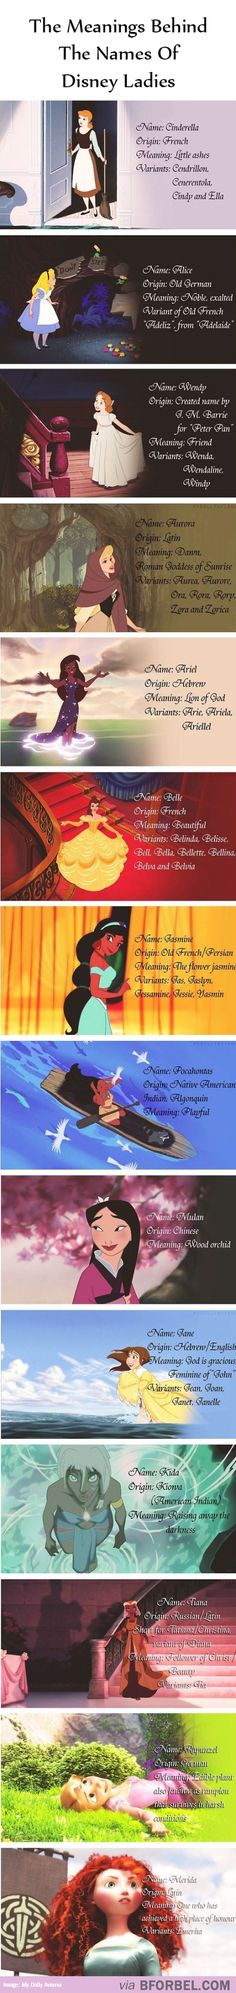 Disney names, and their meanings and origins. Amazing!